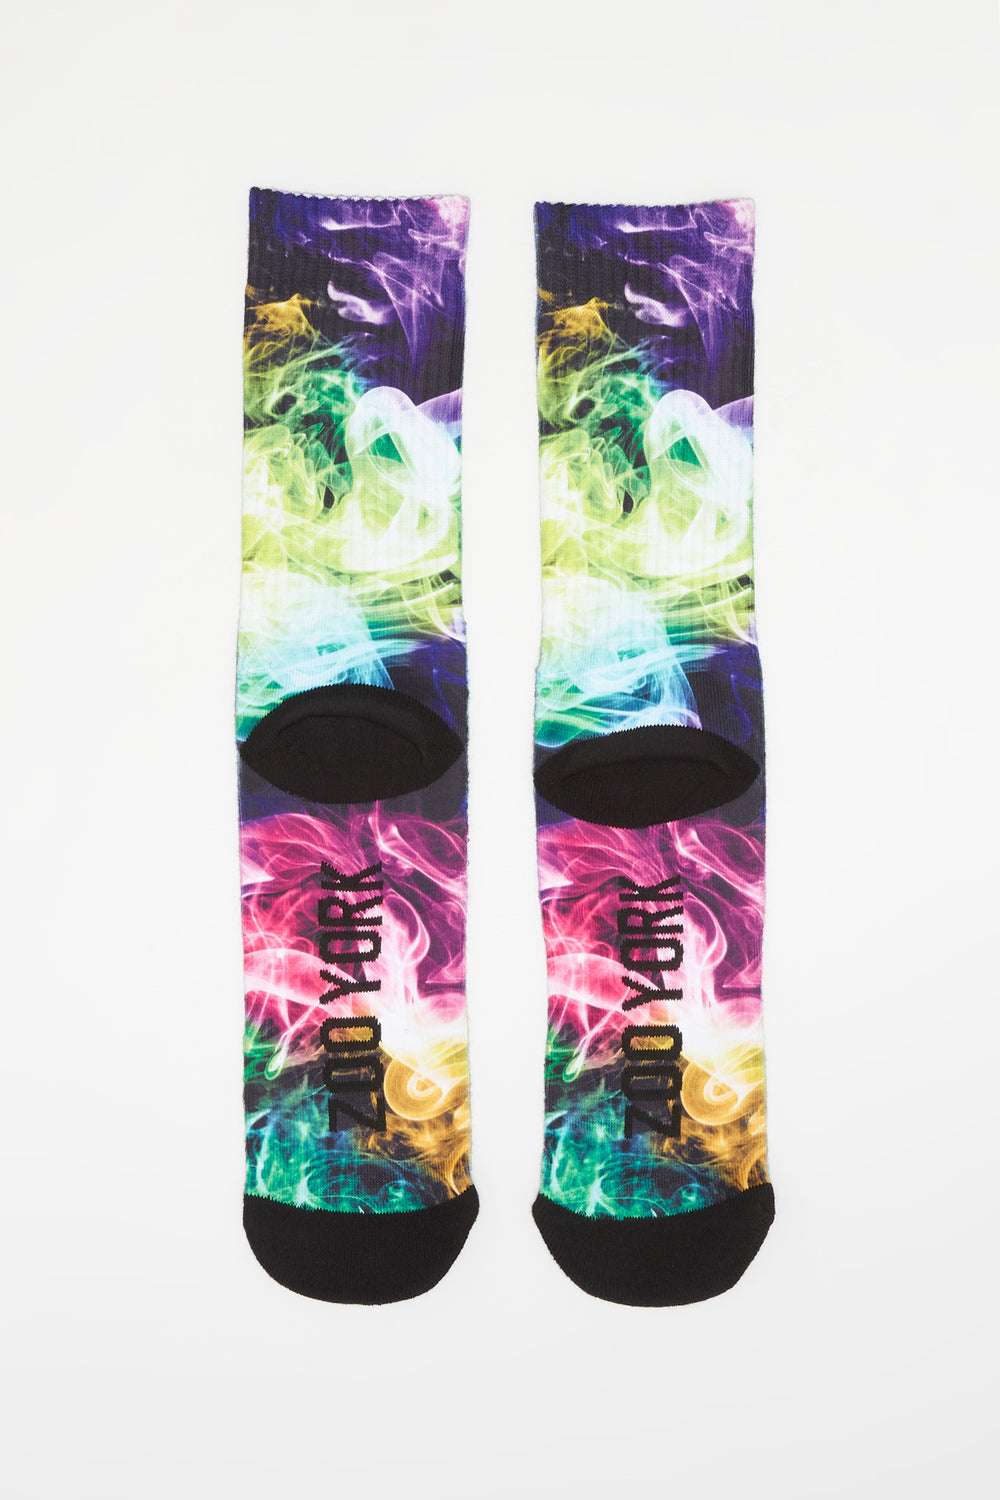 Zoo York Mens Sublimated Graphic Crew Socks Black